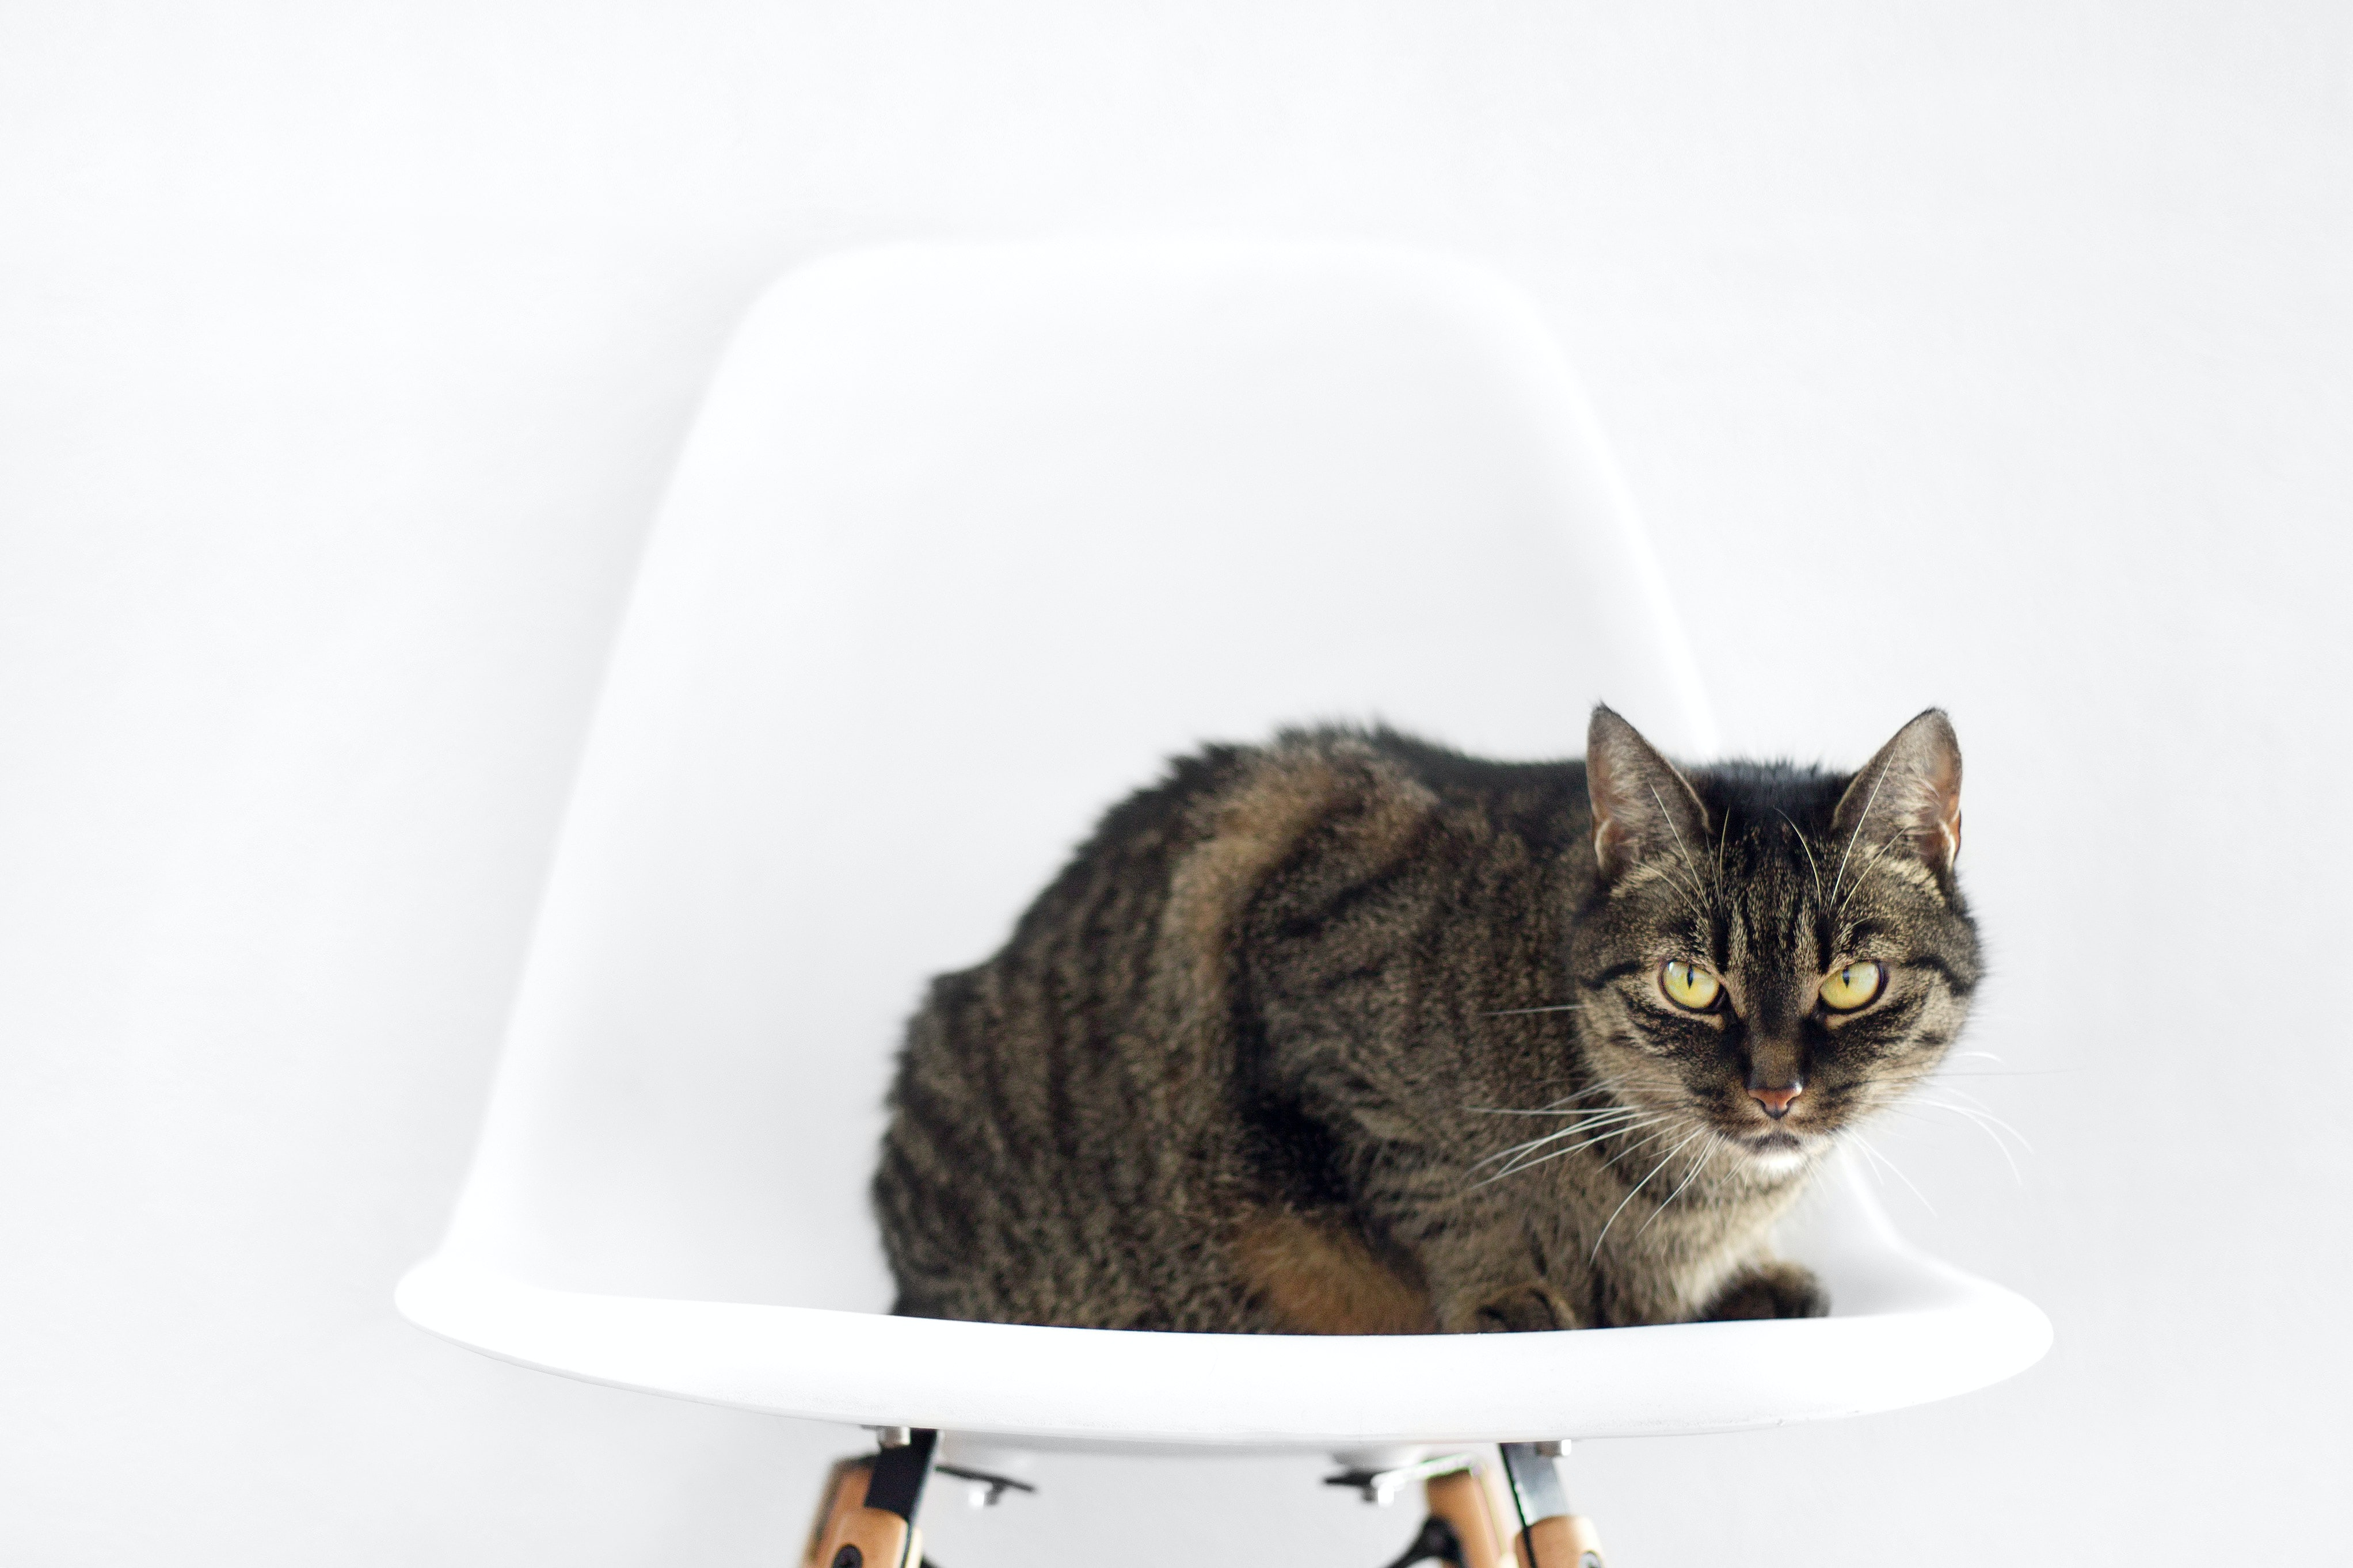 A tabby cat sitting on a white chair